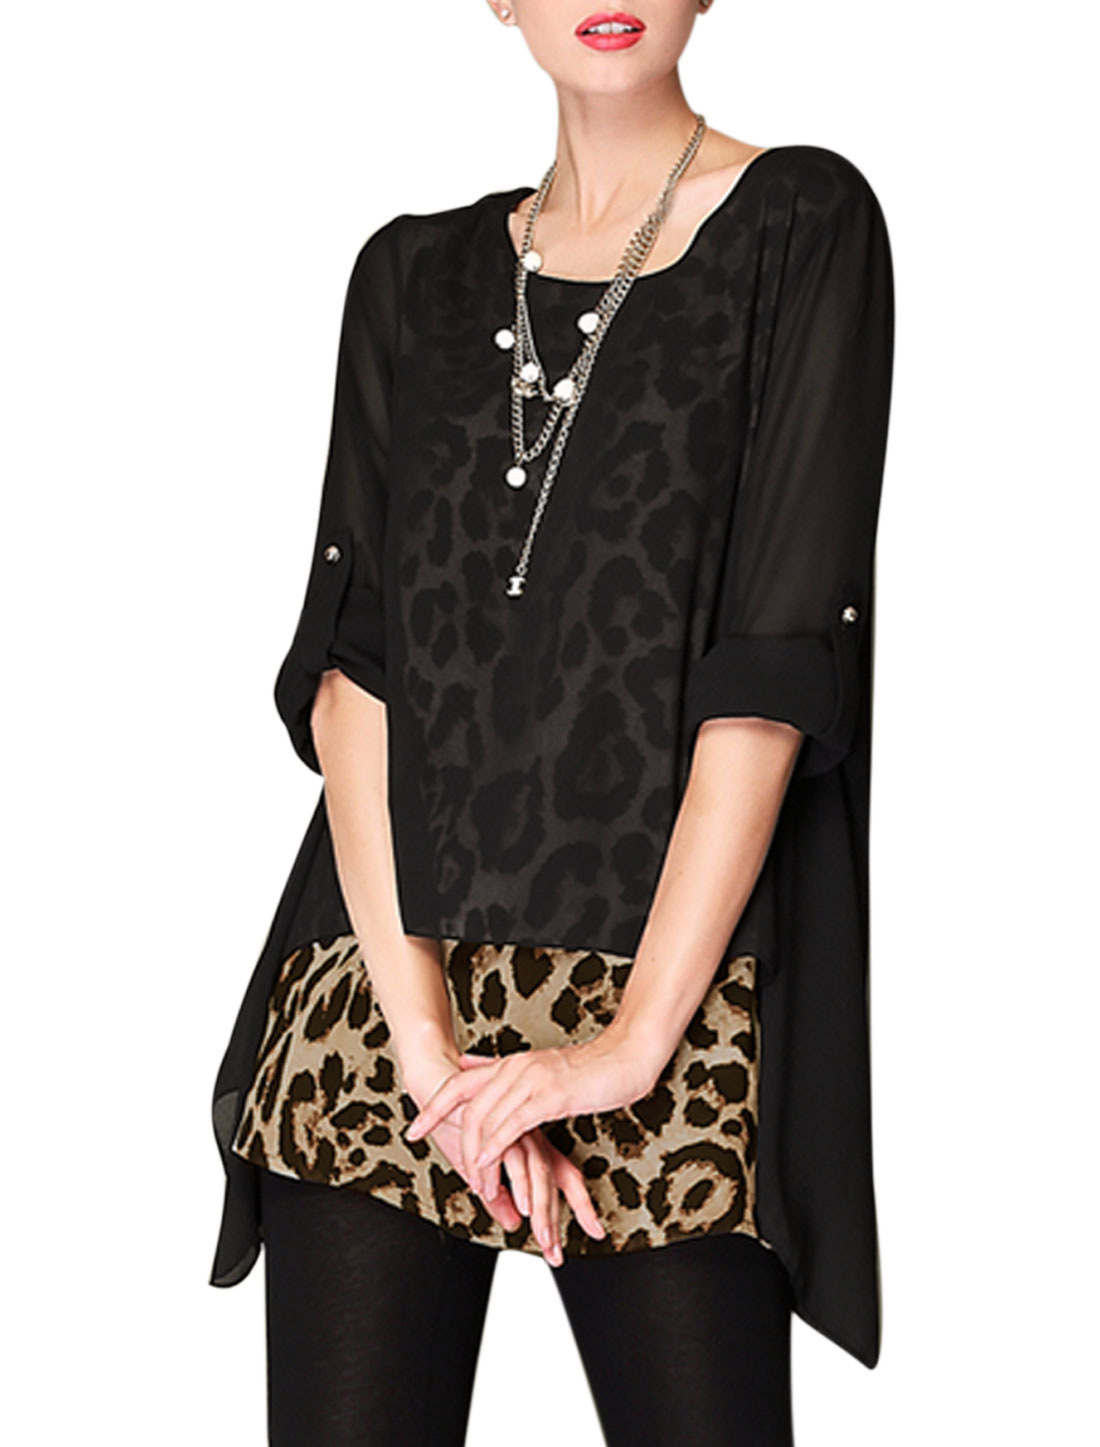 Women Leopard Prints Layered Shirts Lining Chiffon Tunic Blouse Black S